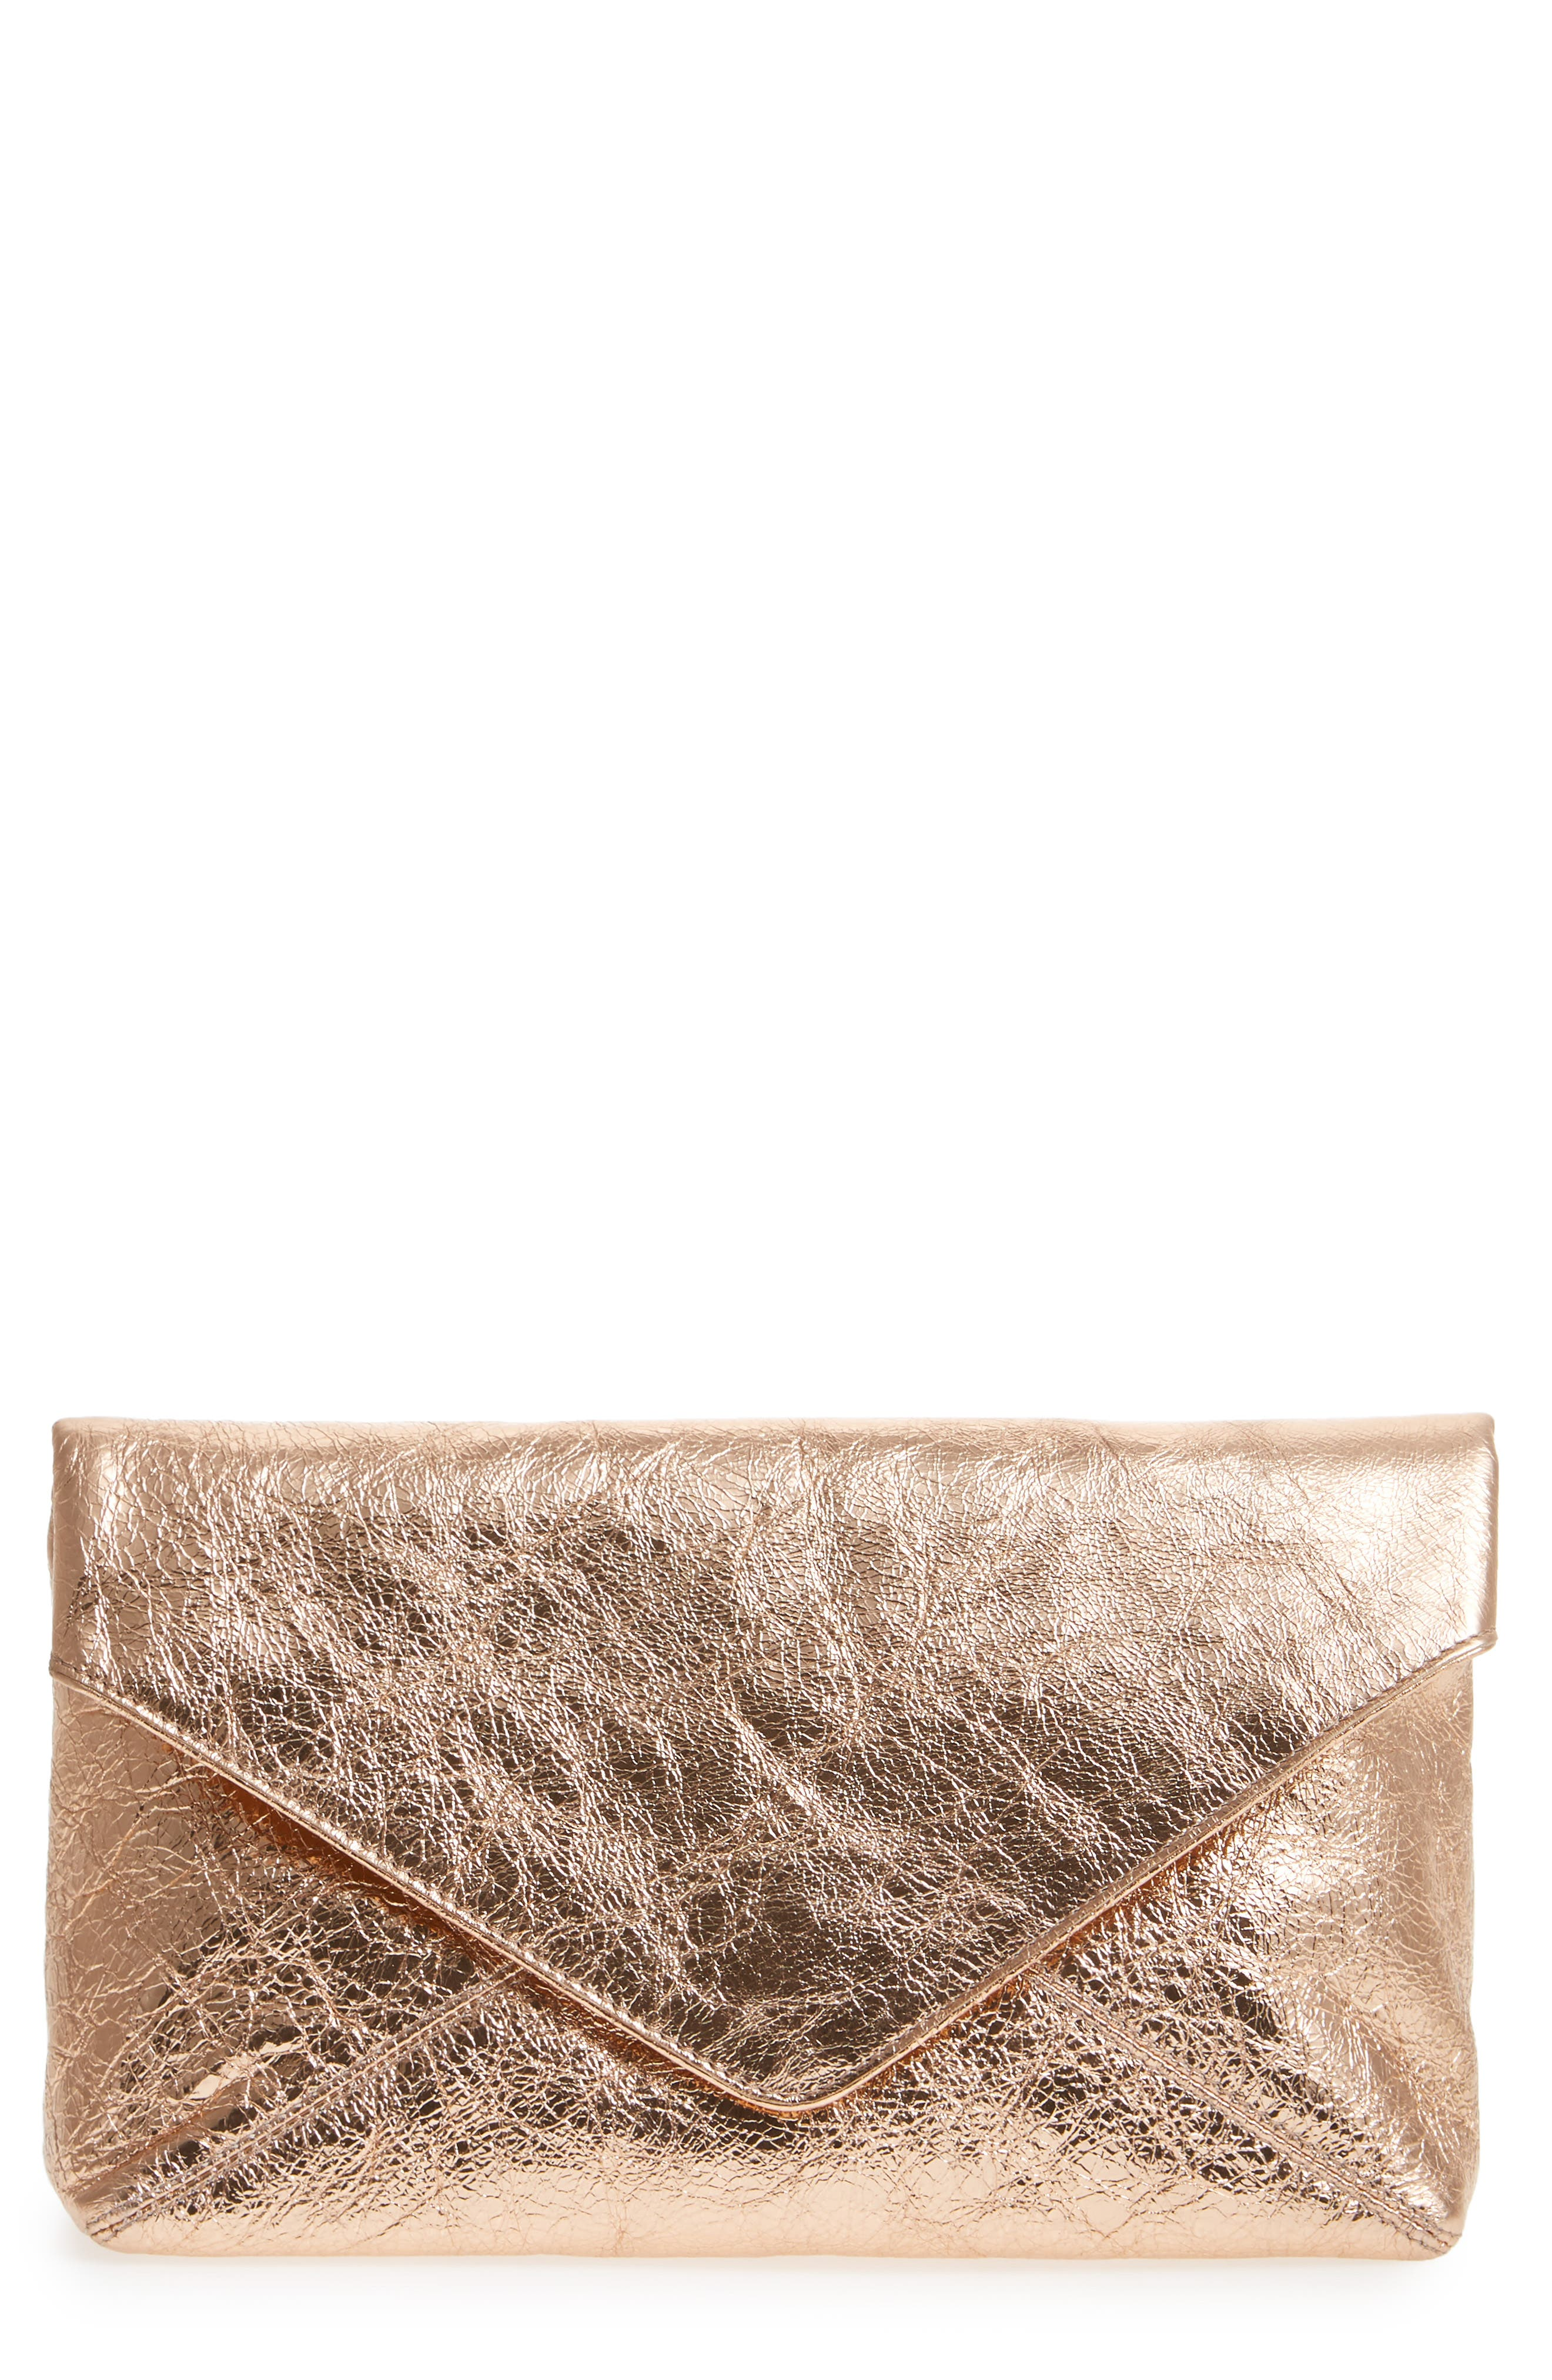 Dries van Noten Crinkle Metallic Leather Envelope Clutch